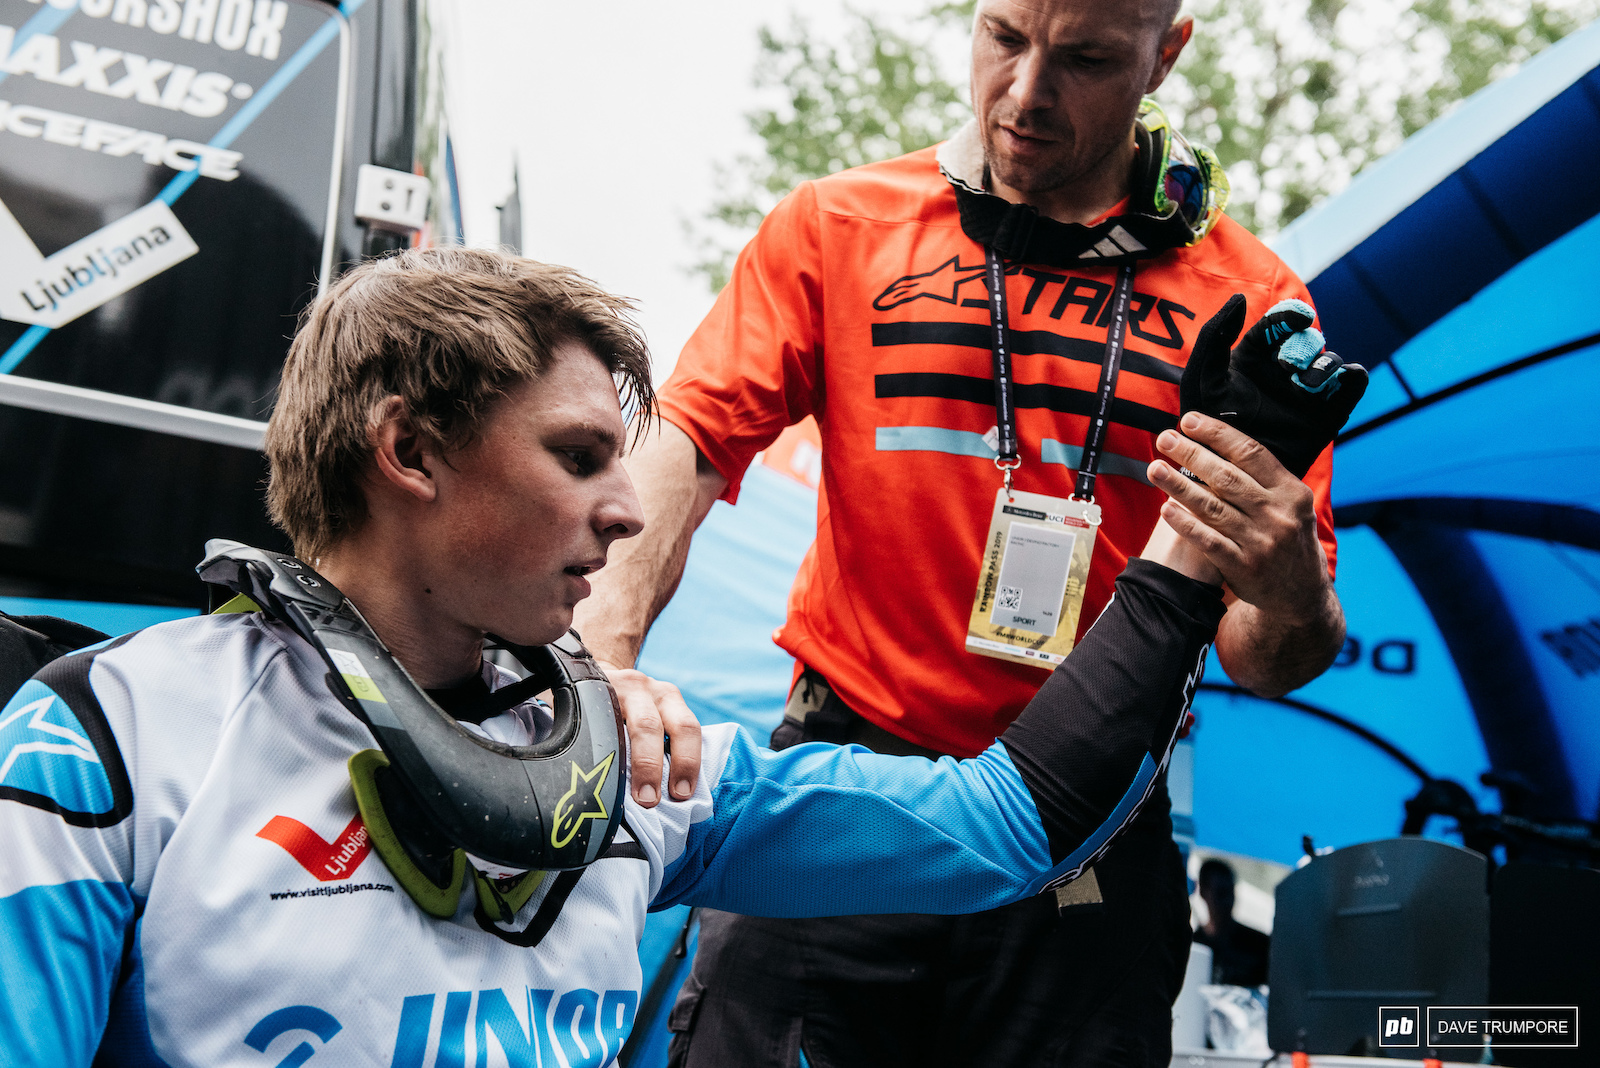 Unfortunately hometown hero Jure Zabjek is racing with an injured shoulder this weekend. But you can be sure he will still get some of the loudest cheers on the hill regardless of his results.